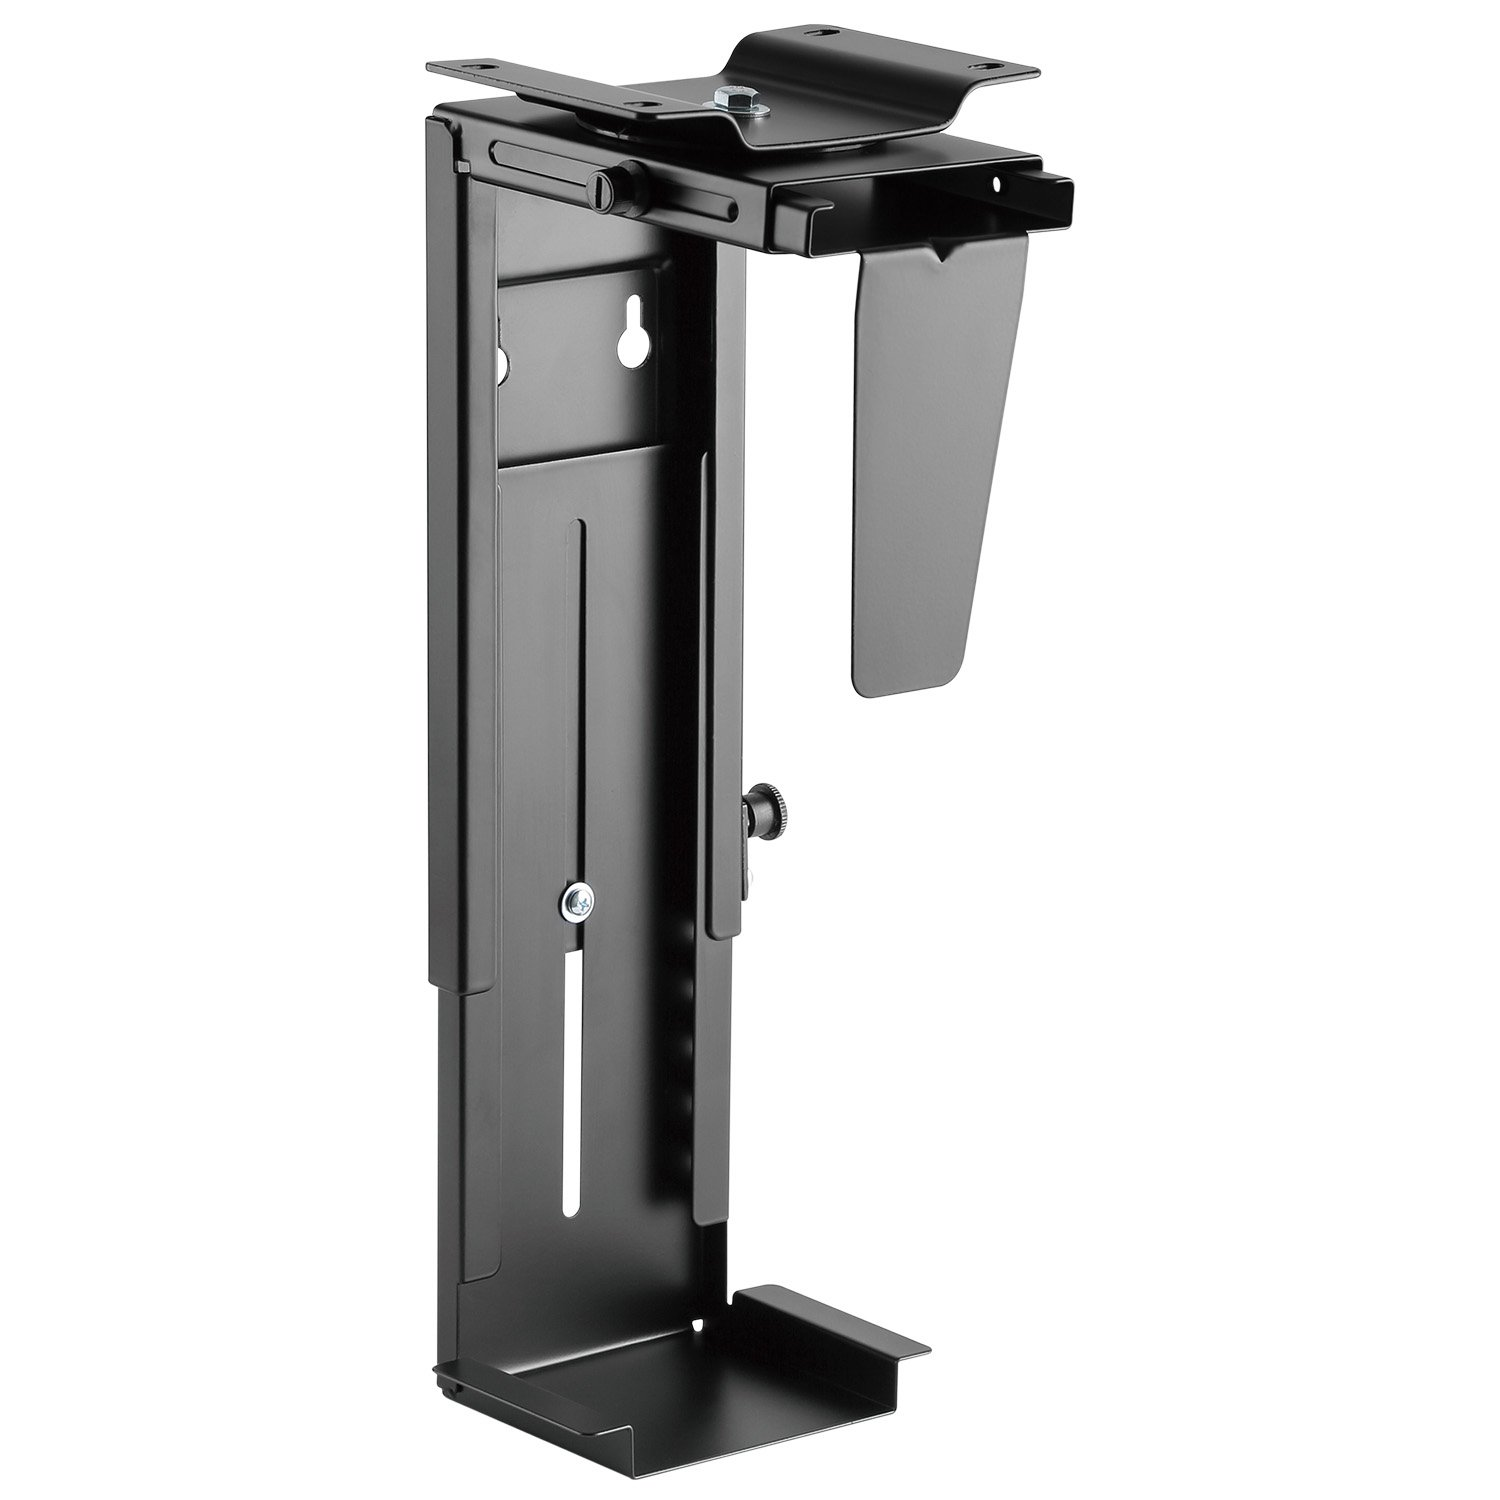 Universal Adjustable Under Desk PC CPU Mount, Wall PC Mount with 360°Swivel, Heavy Duty Computer Tower Holder Holds Up to 22lbs by HUANUO by HUANUO (Image #1)